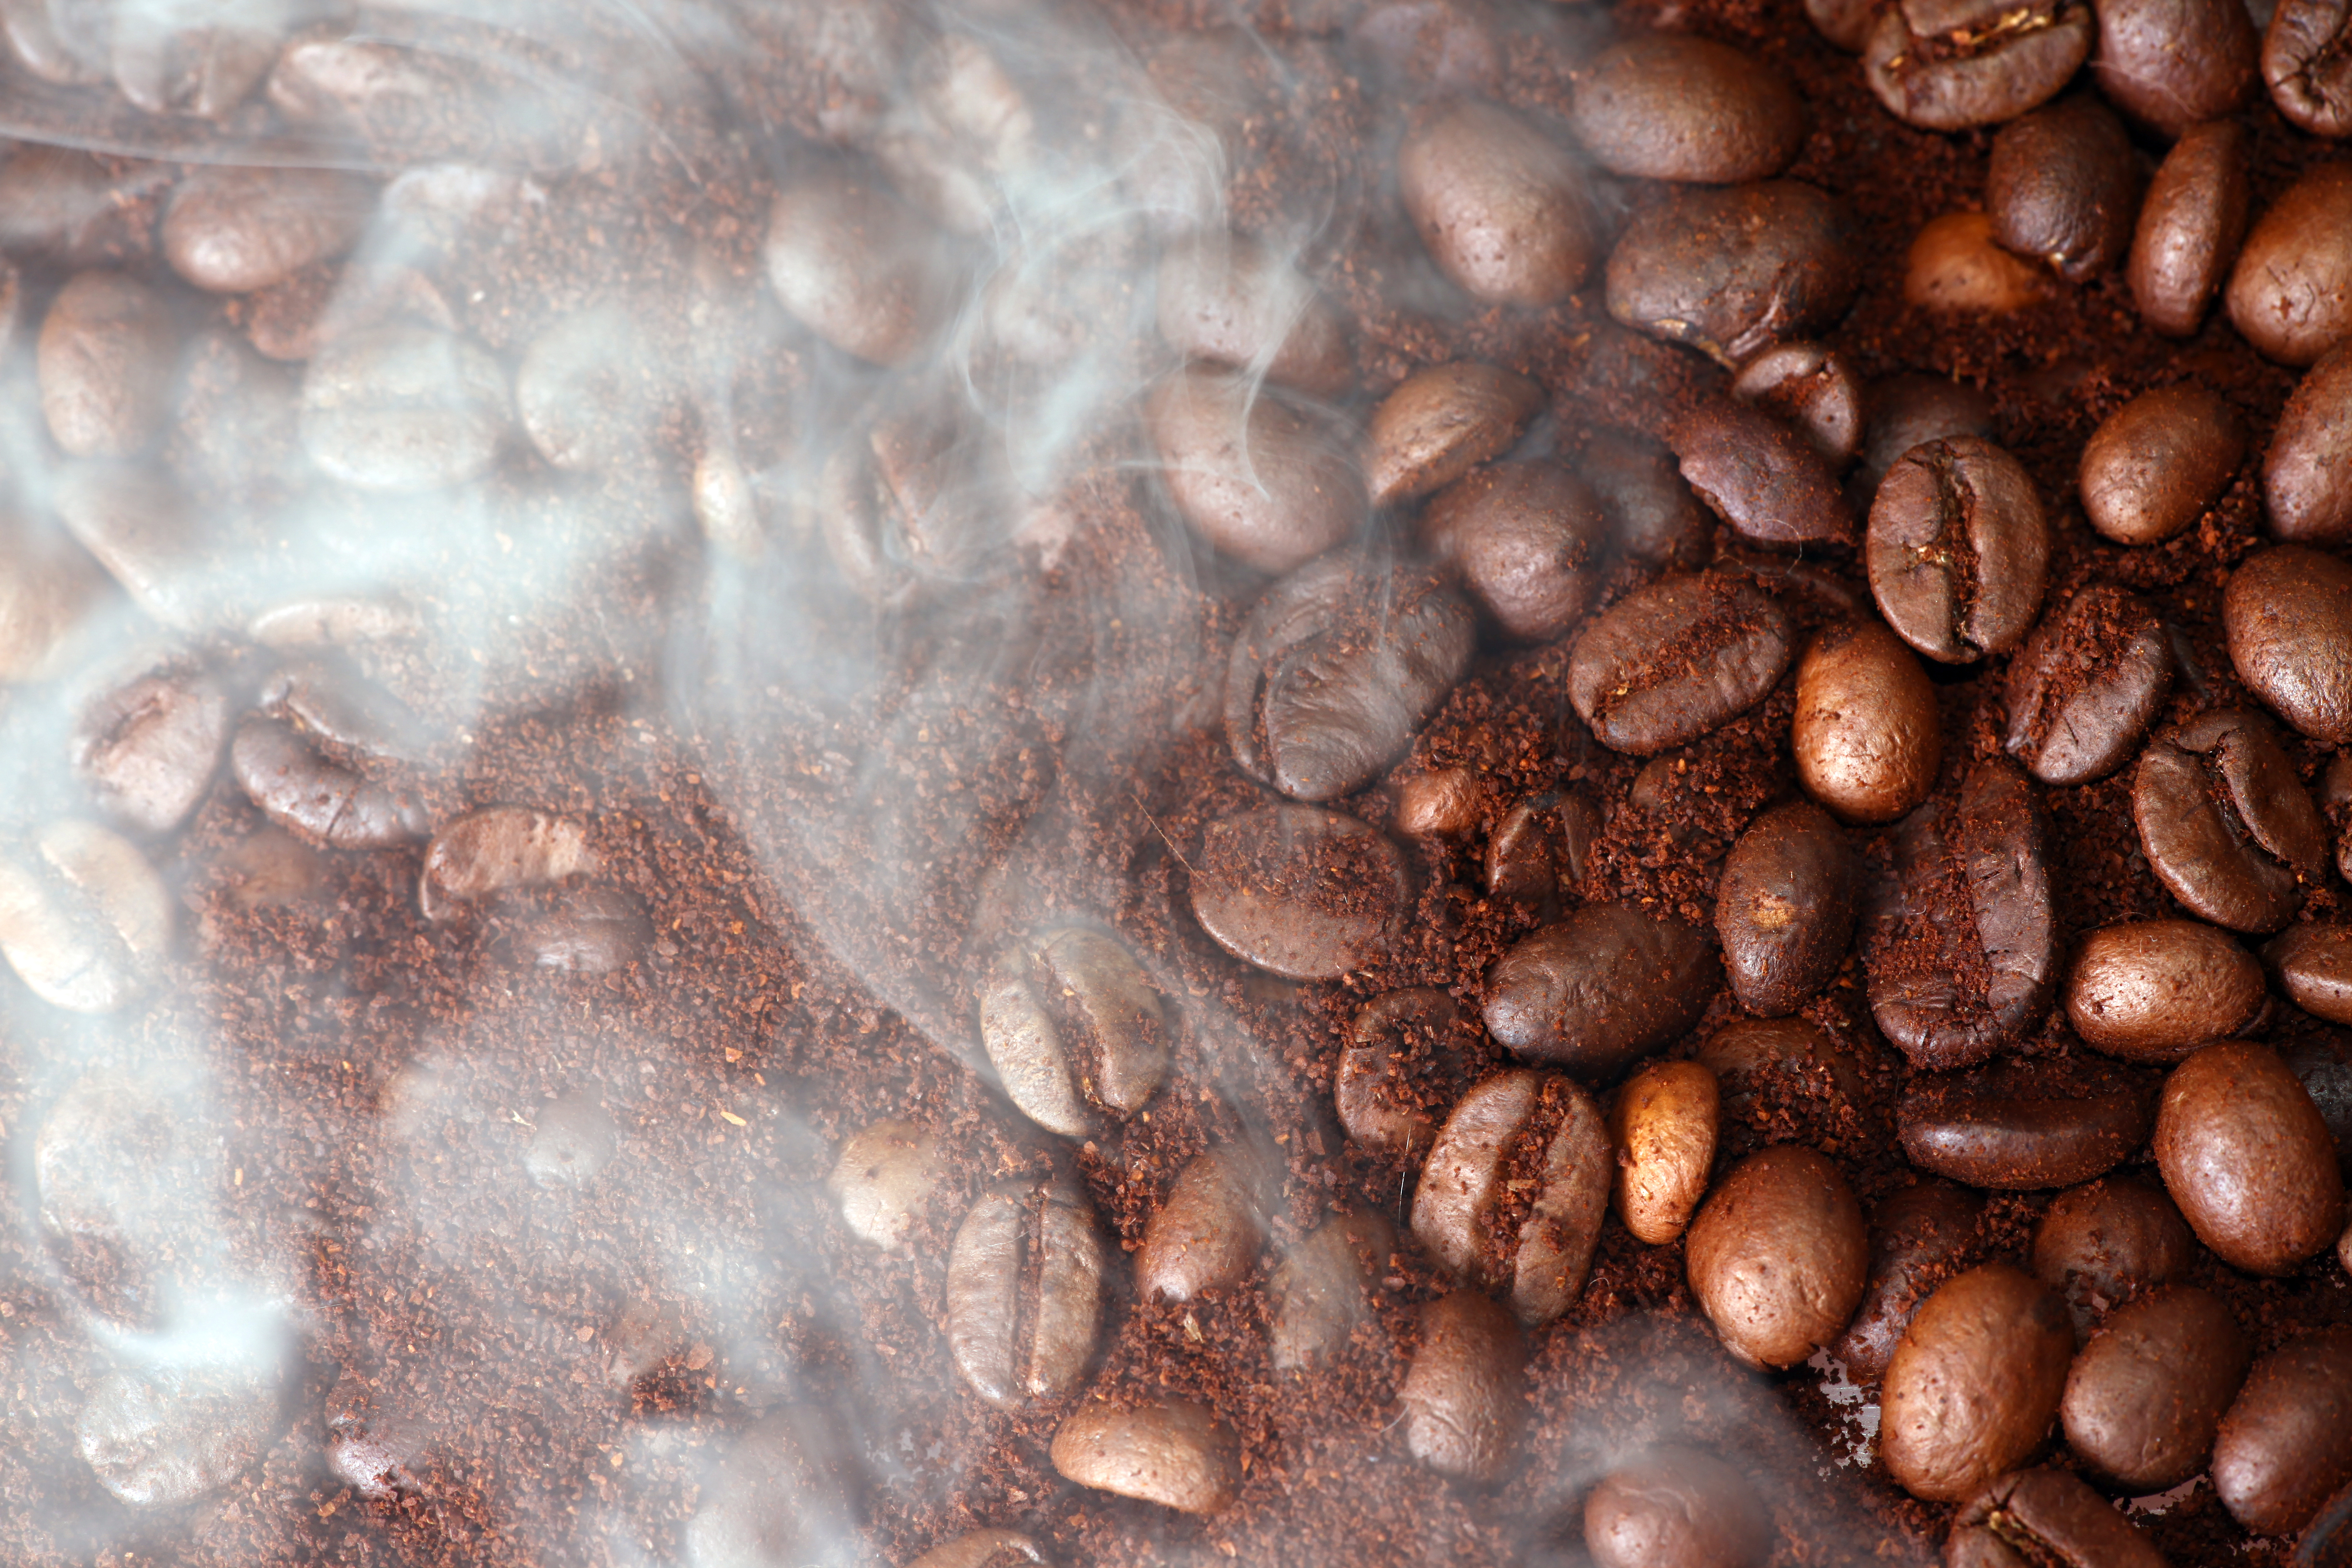 Coffee Beans and Aroma, Abstract, Objects, Ingredient, Large, HQ Photo